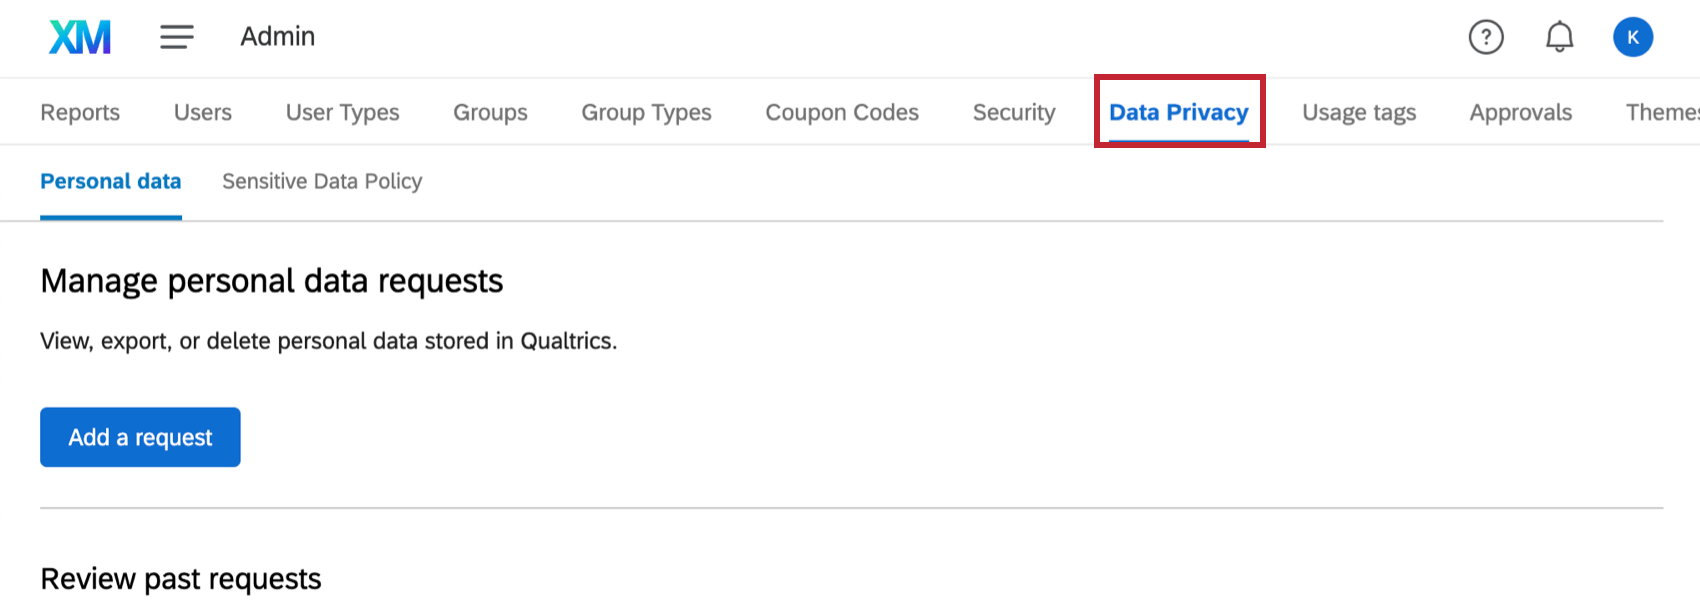 Data privacy tab is selected